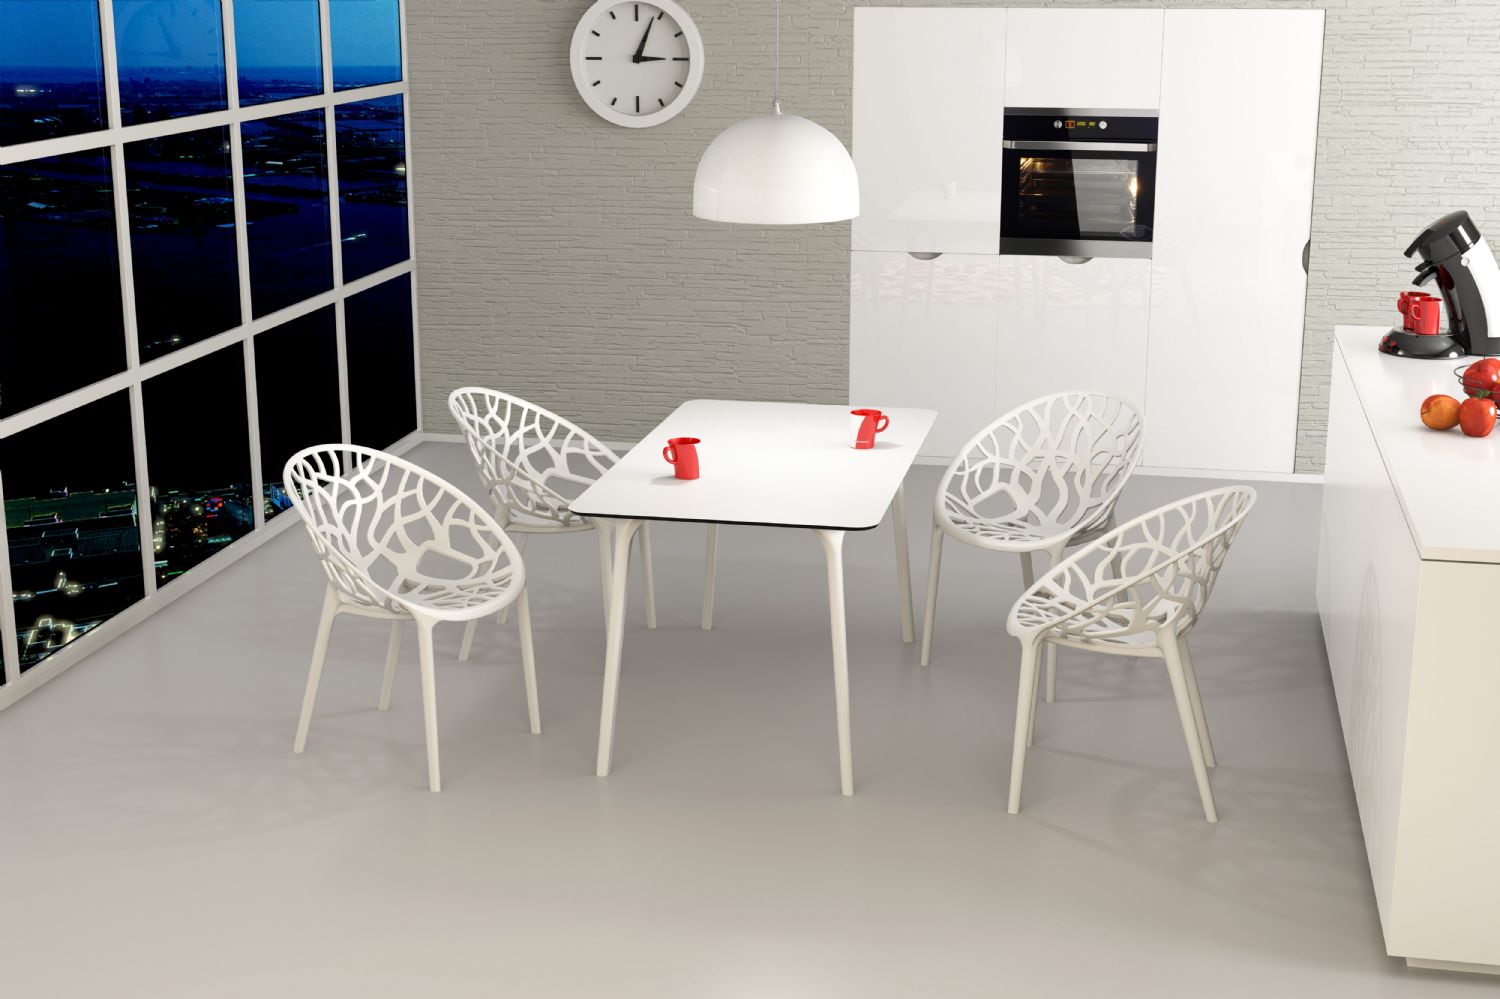 Crystal Polycarbonate Modern Dining Chair Transparent ISP052-TCL - 4